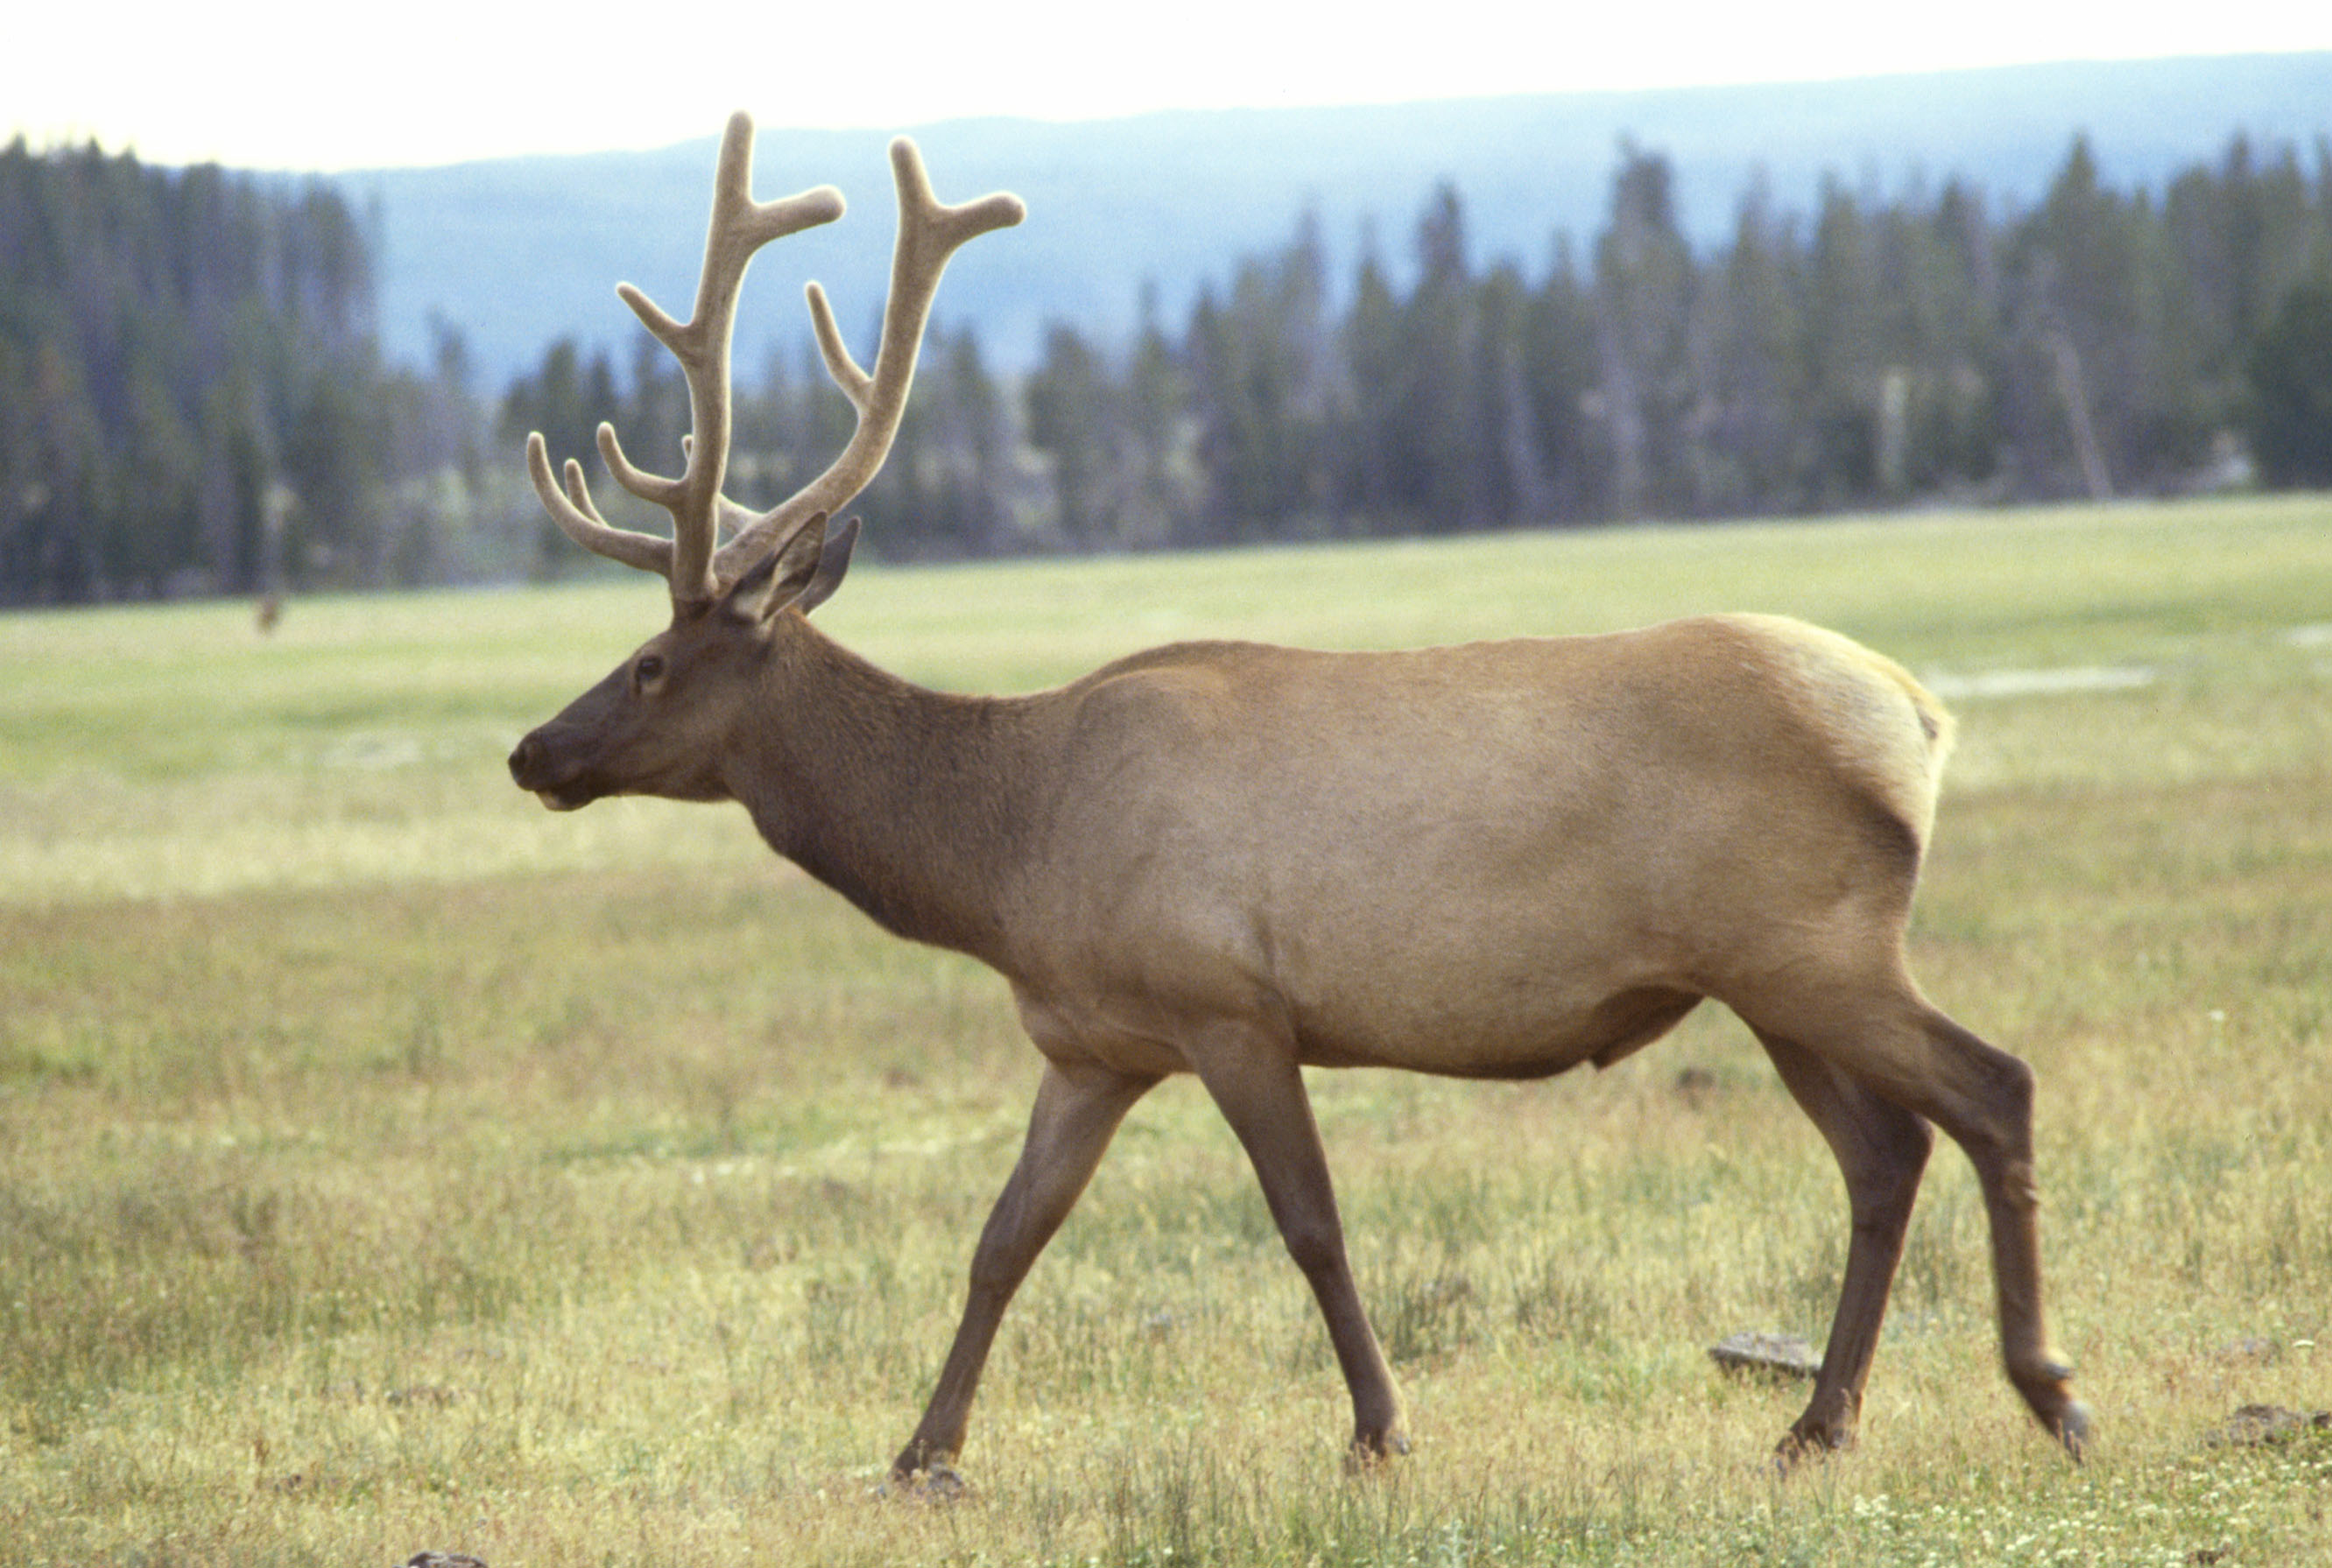 https://upload.wikimedia.org/wikipedia/commons/c/cd/Wapiti.jpg